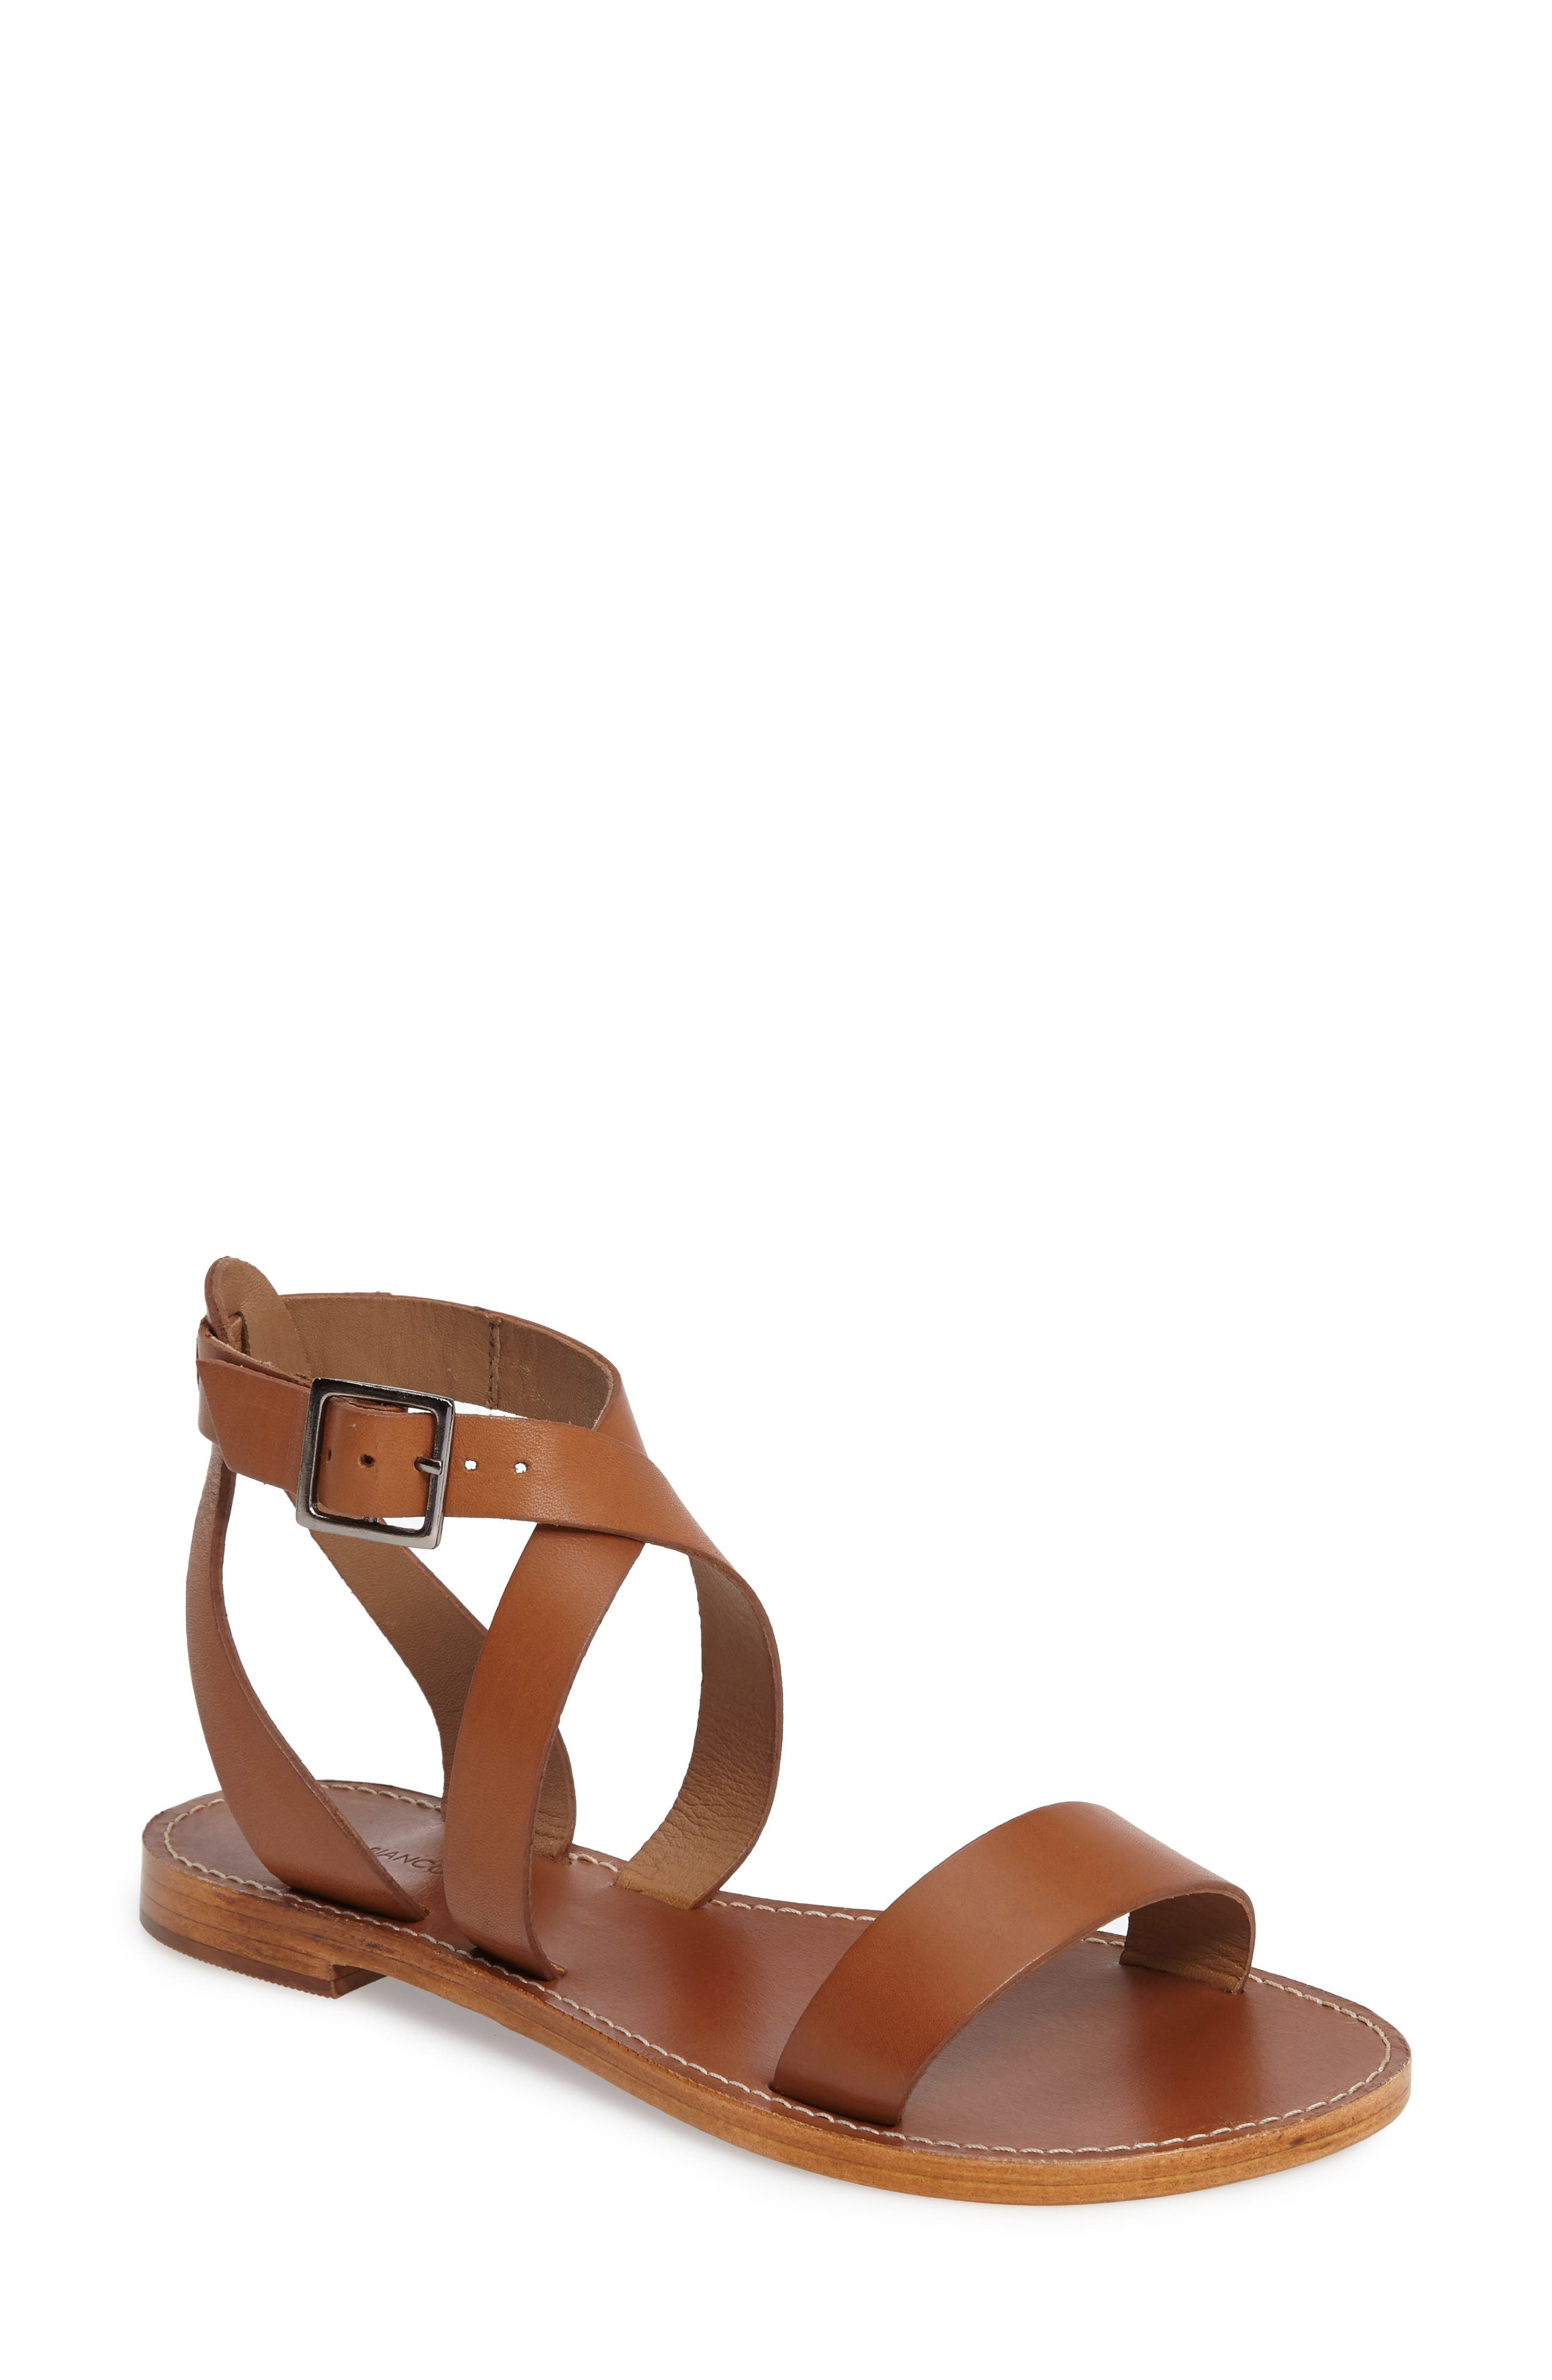 Main Image - Tony Bianco Flo Ankle Strap Sandal (Women)